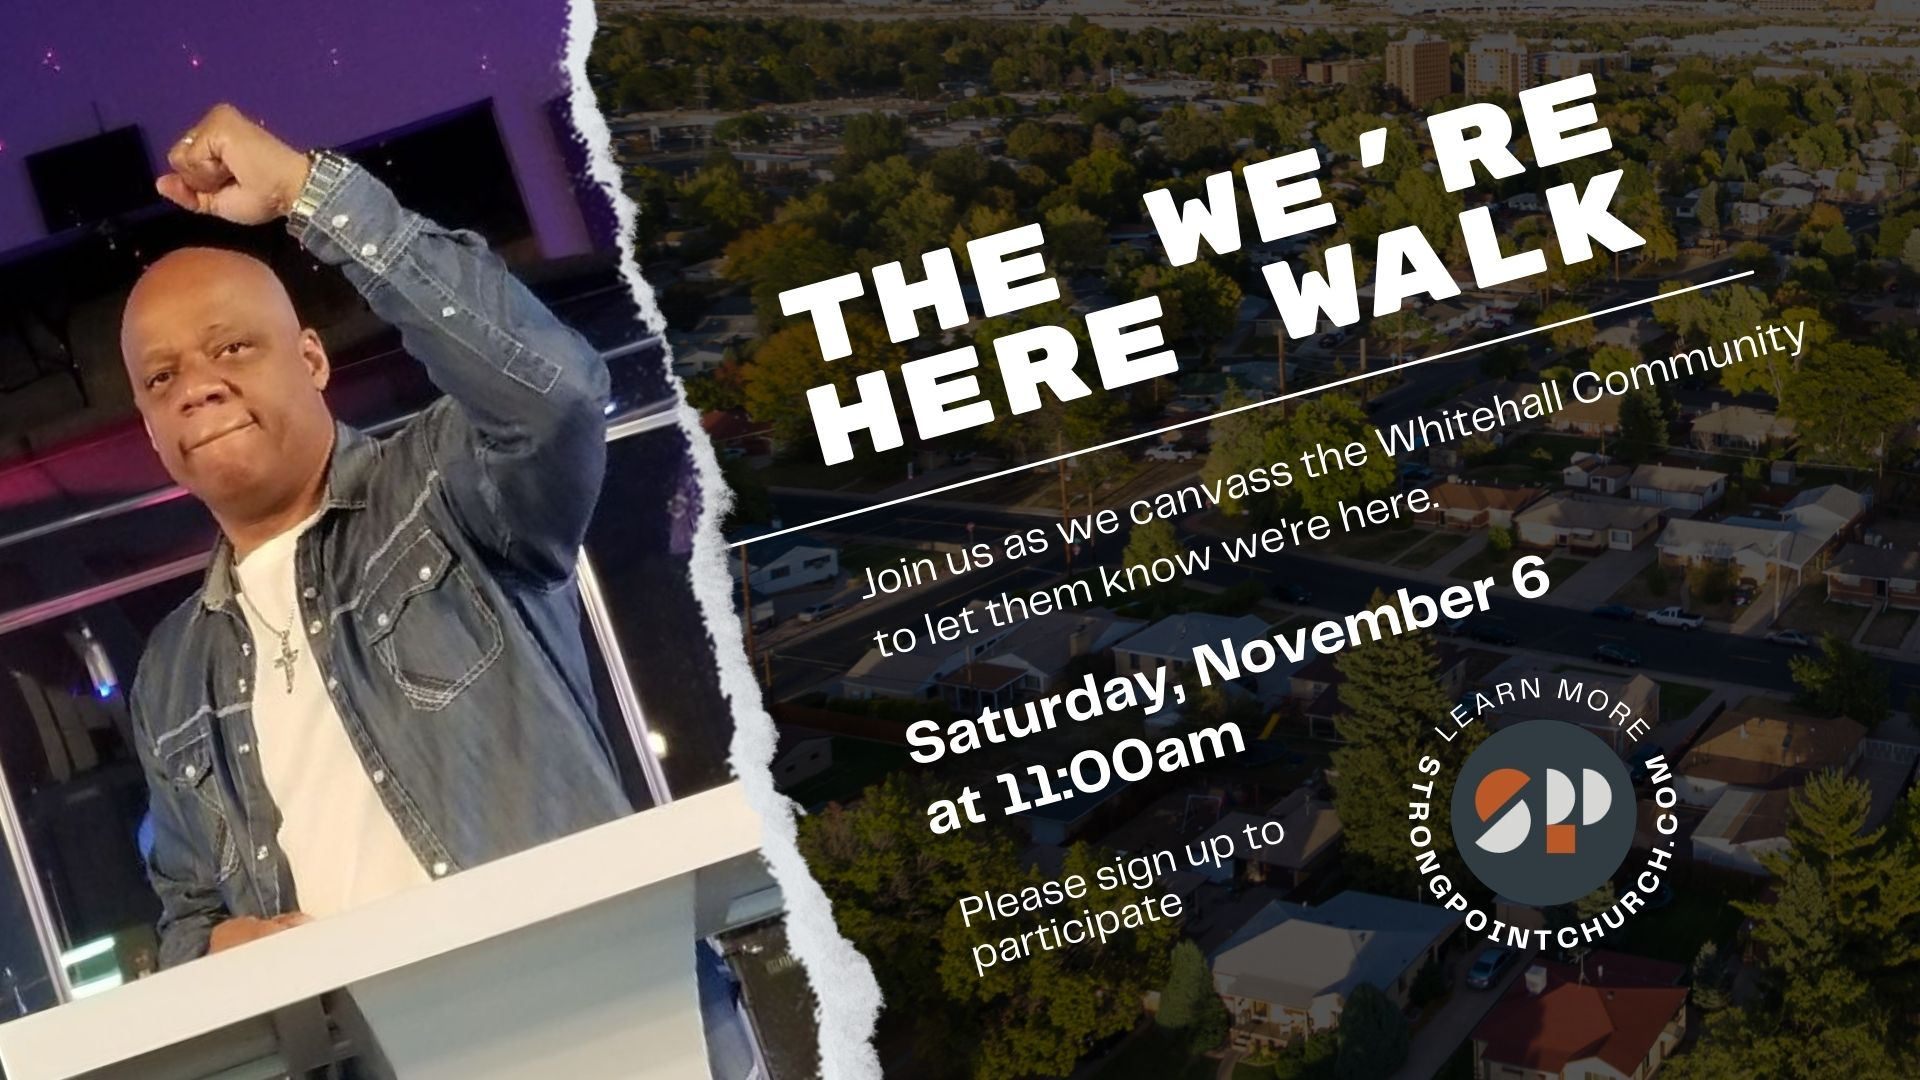 The We're Here Walk